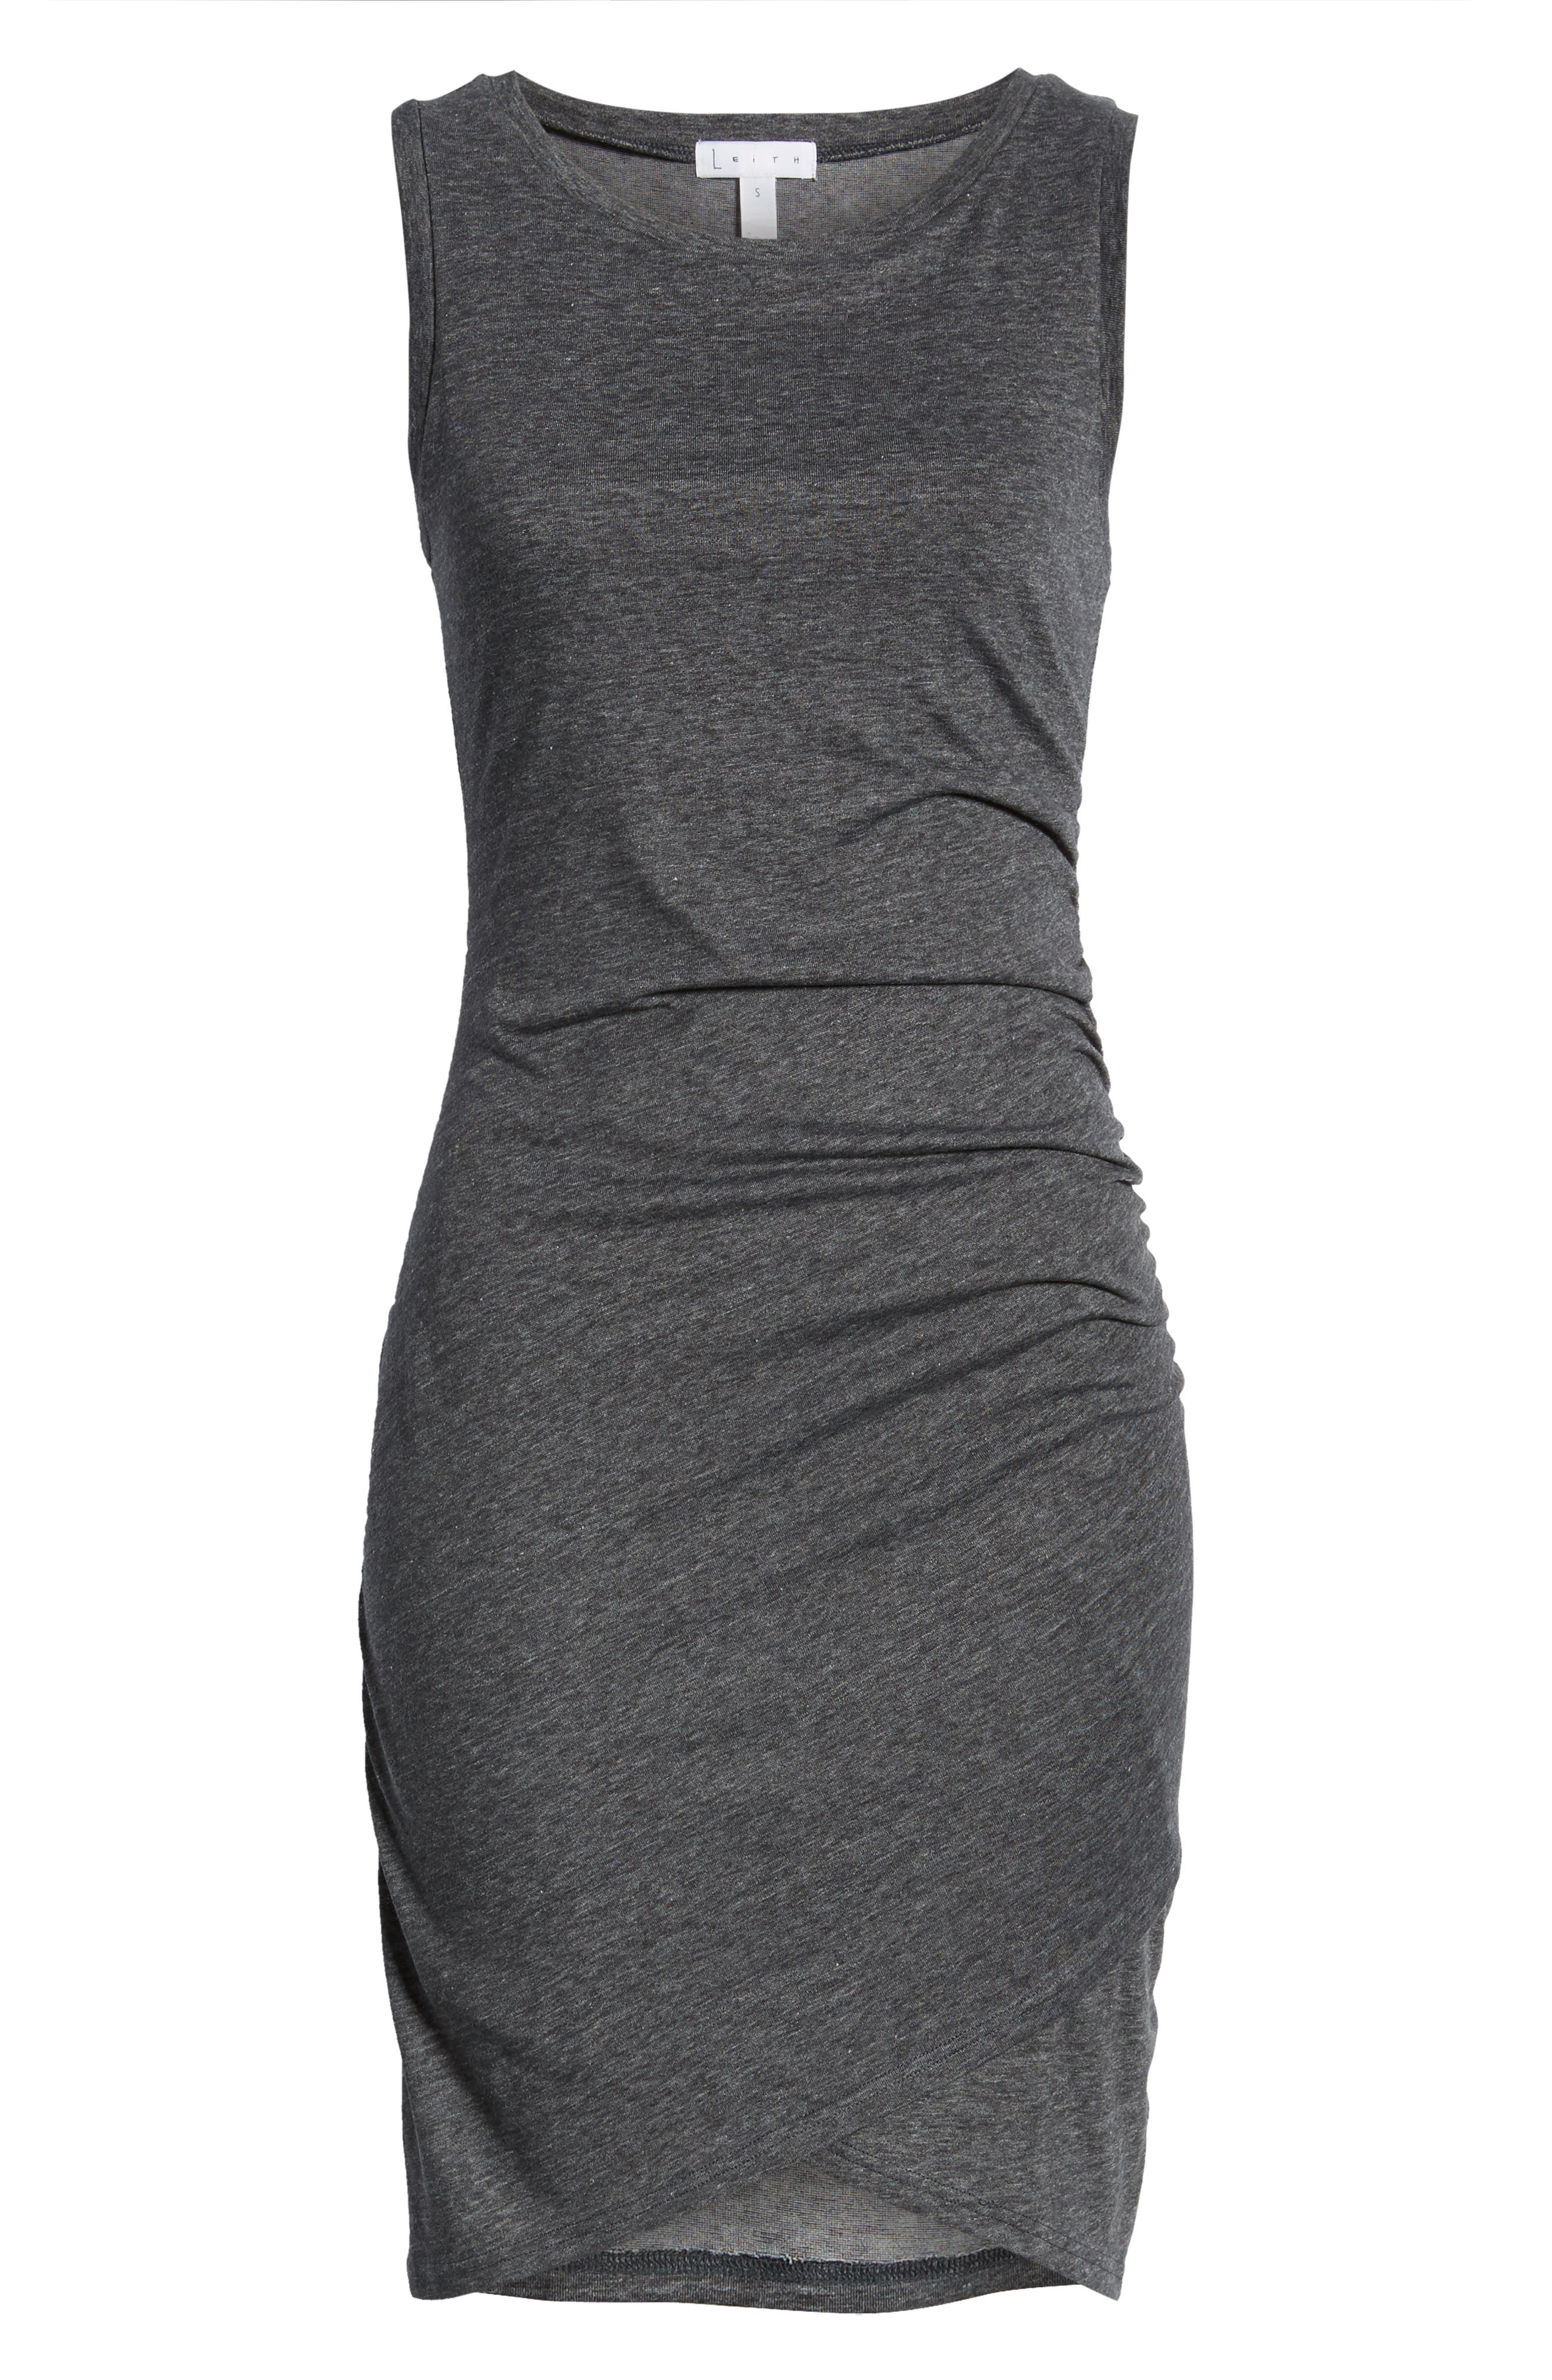 Ruched Body-Con Tank Dress,                             Alternate thumbnail 7, color,                             GREY MEDIUM CHARCOAL HEATHER